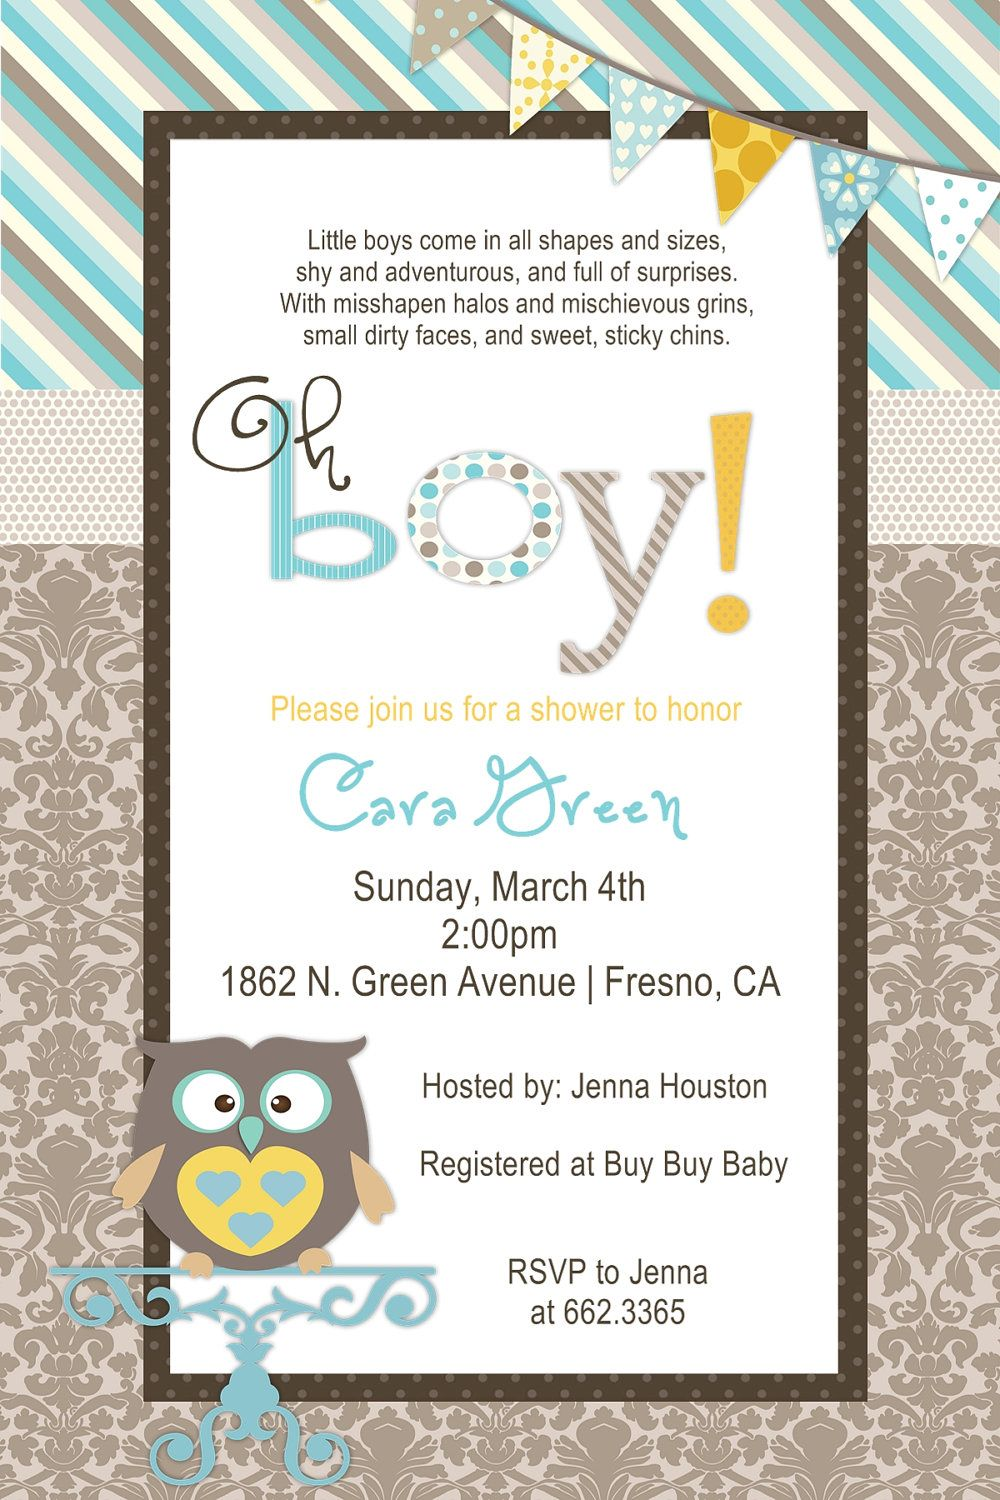 Baby boy owl baby shower invitation owl shower shower invitations baby boy owl shower invitation 1250 via etsy filmwisefo